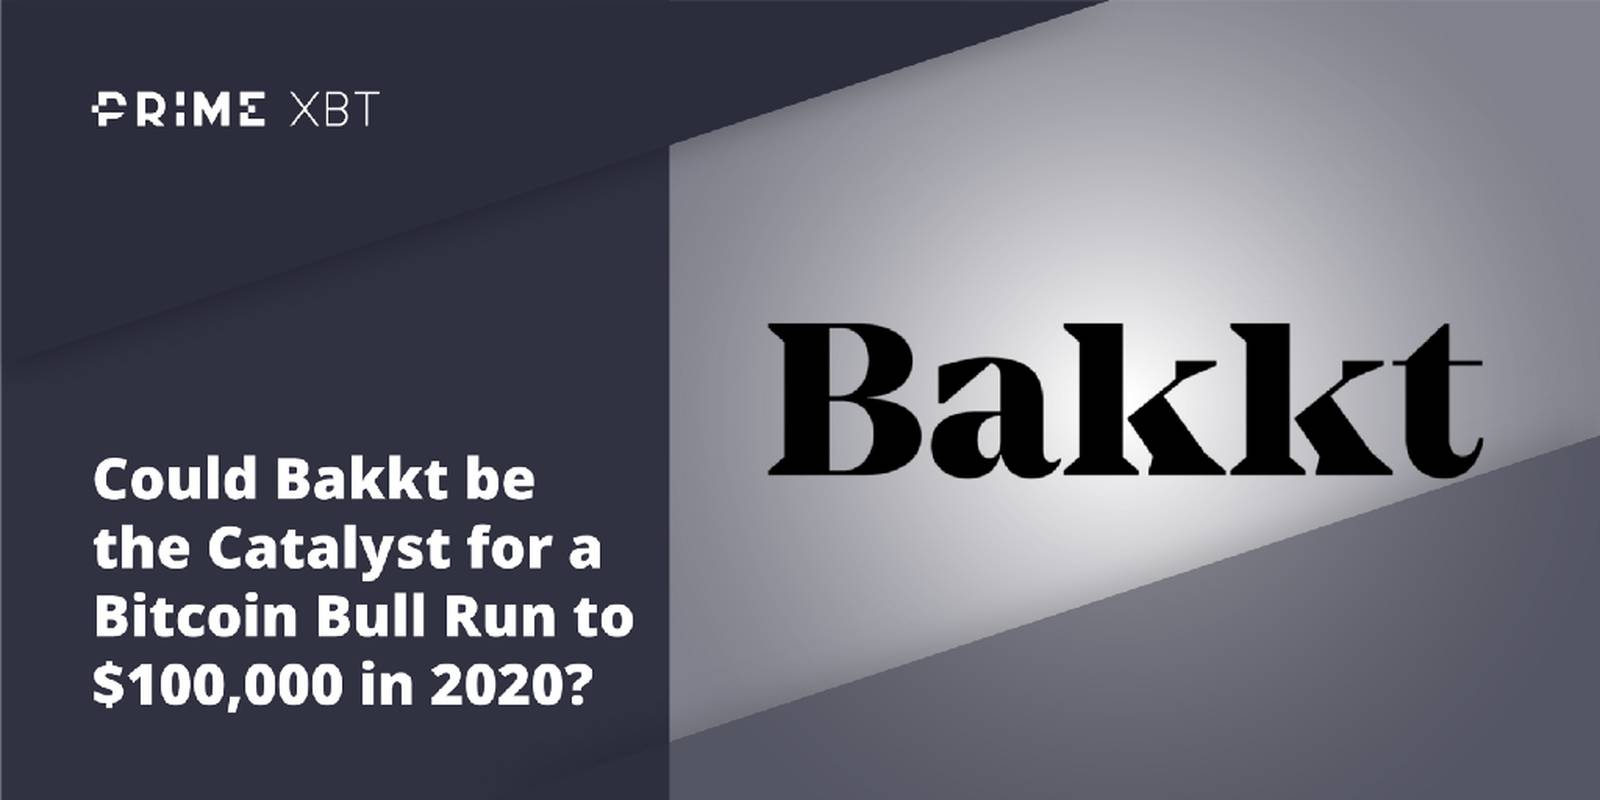 Could Bakkt be the Catalyst for a Bitcoin Bull Run to $100,000 in 2020? - 1 8bZWKaXAmqk39hkAA3cLHw